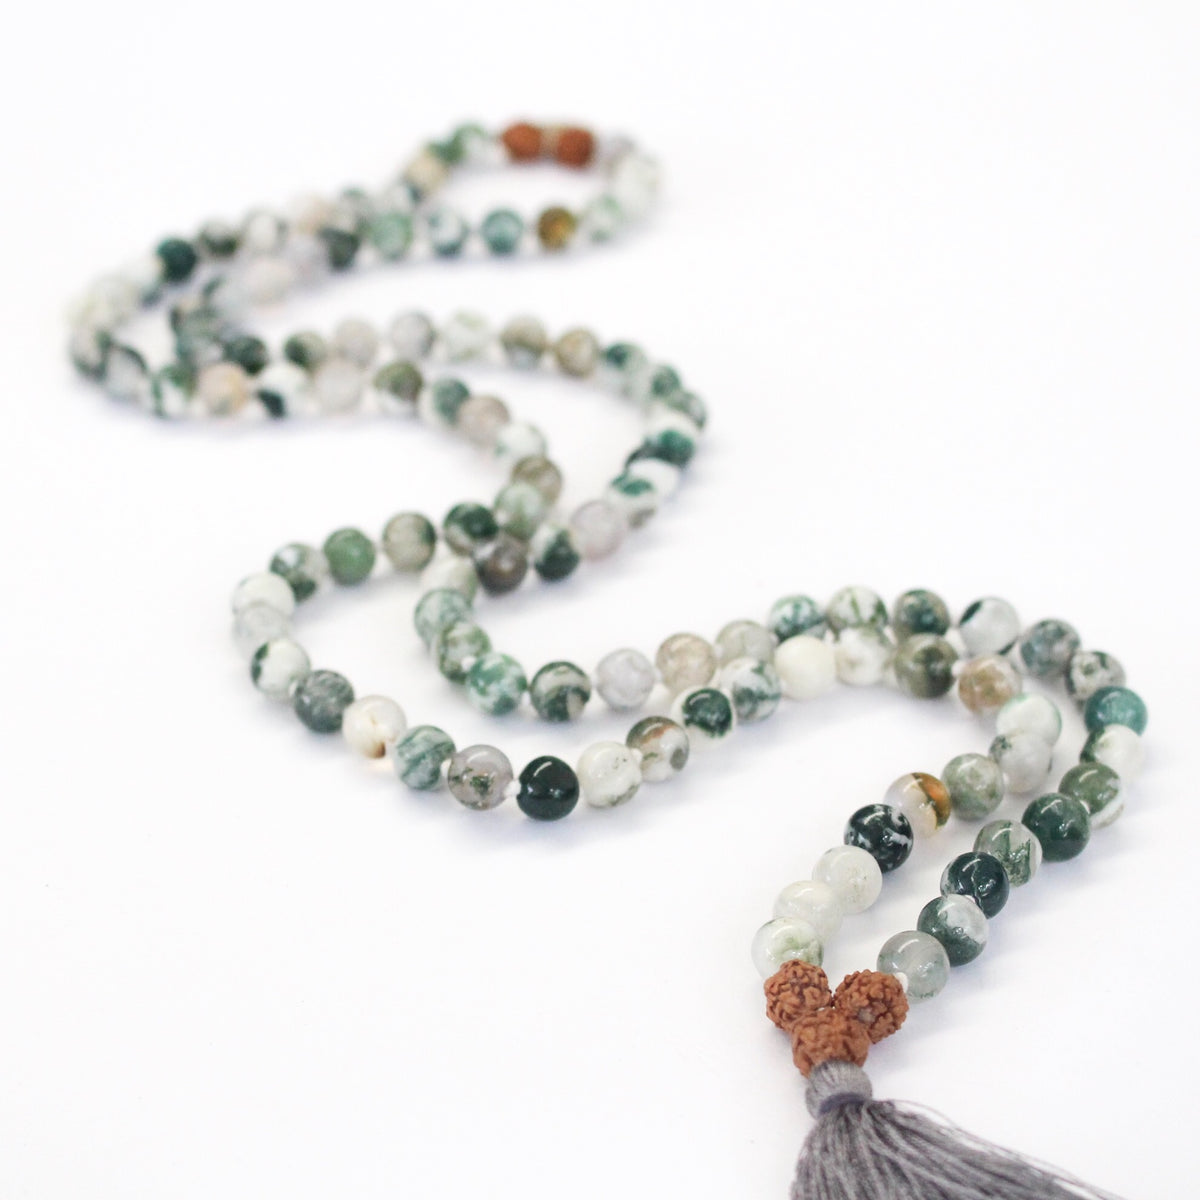 108 Meditation and Yoga Beads